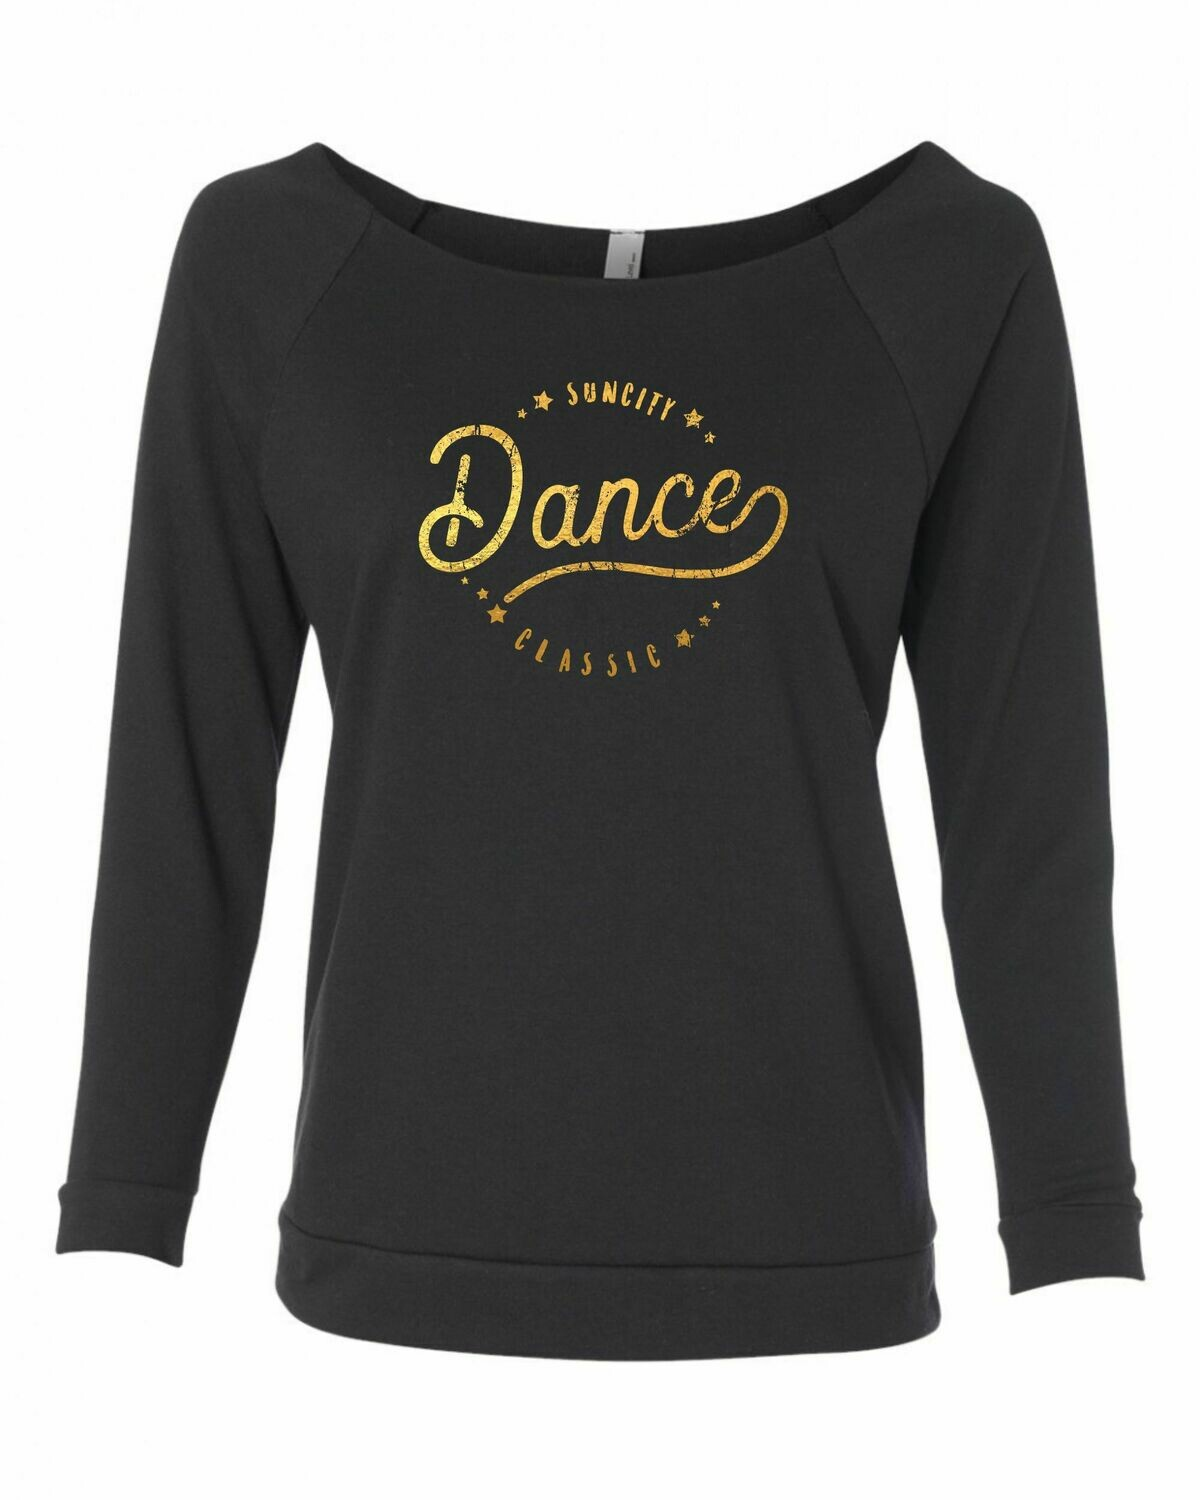 Sun City Dance Longsleeve